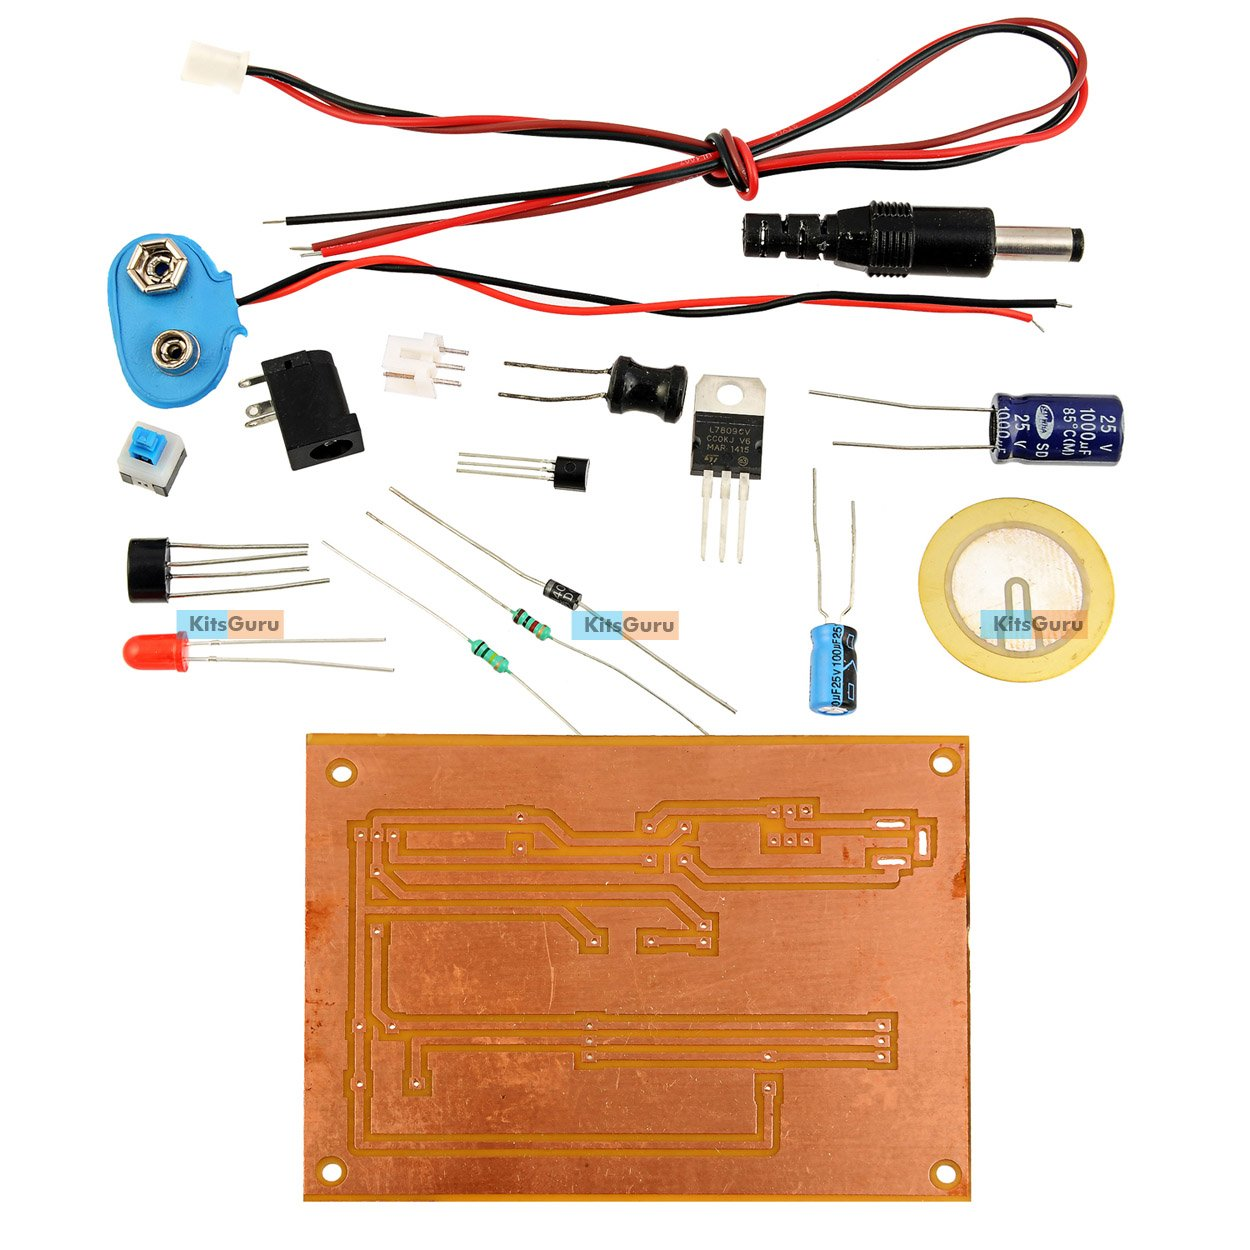 Kitsguru Diy Kit Piezo Electric Buzzer Lgkt106 Electronics Mini Circuit Today Projects Diagram Ask Home